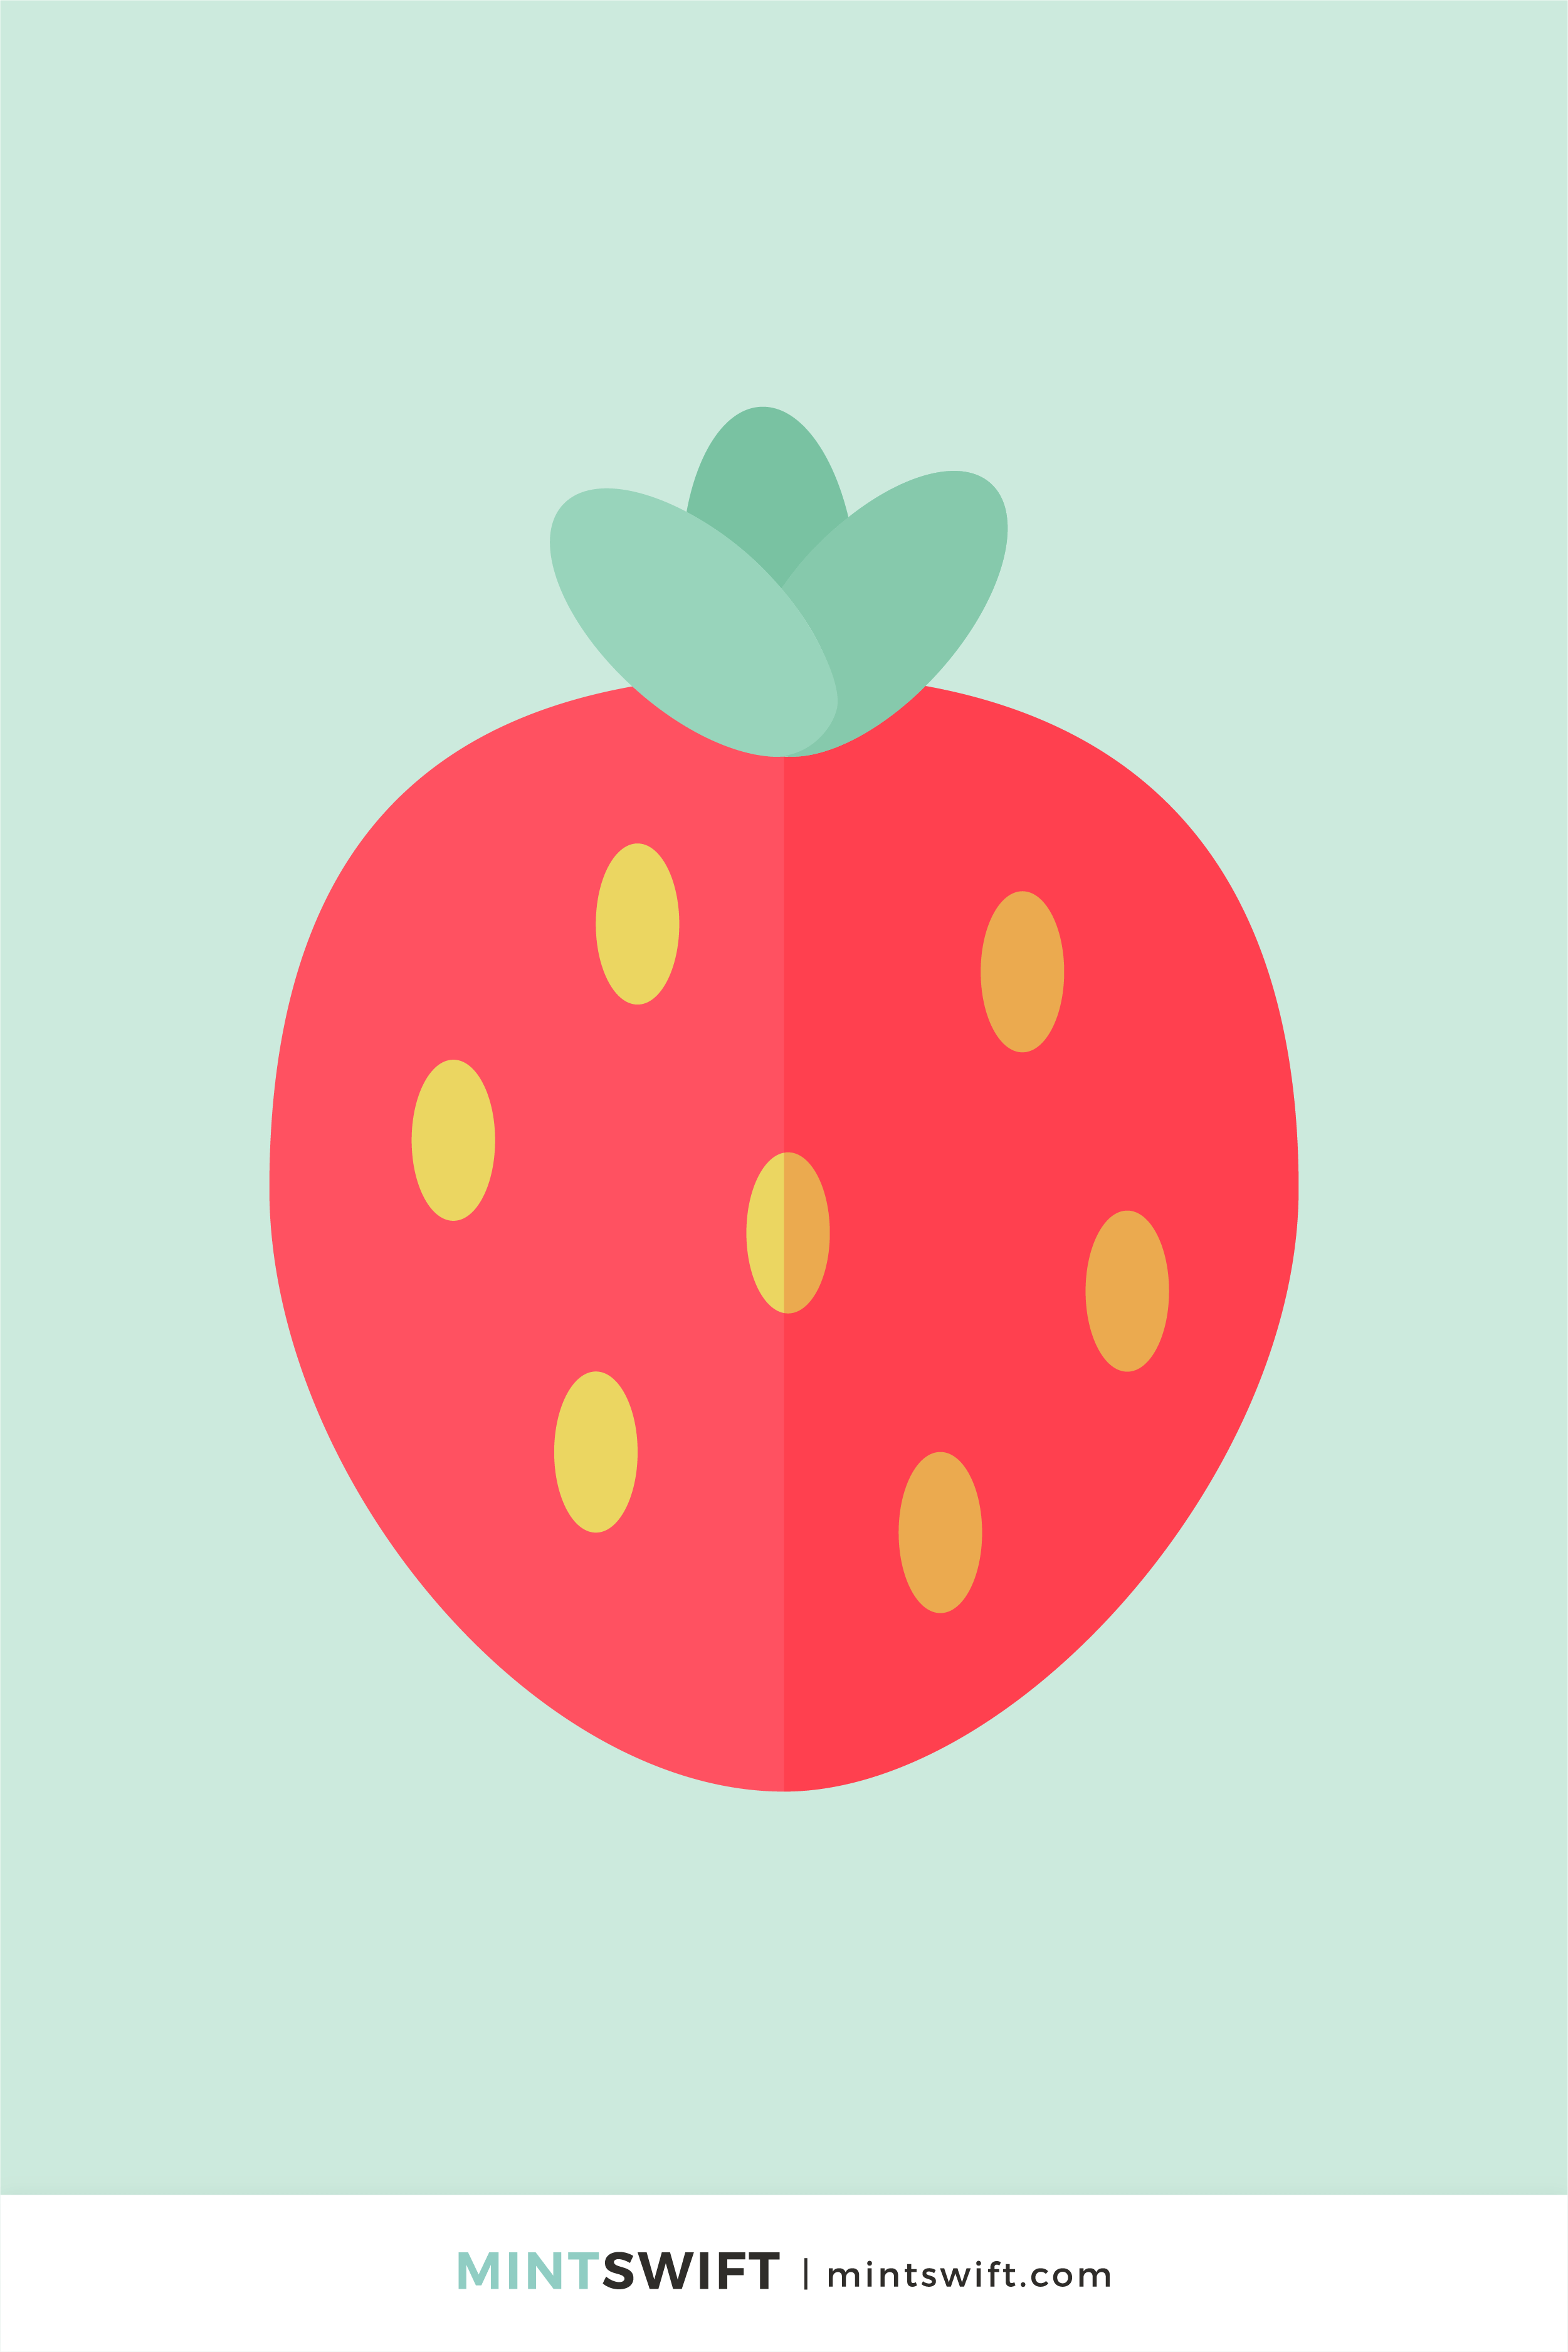 Vector illustration of a strawberry in flat design style. Red fruit with yellow seeds on the outside and three green leaves on a light green background